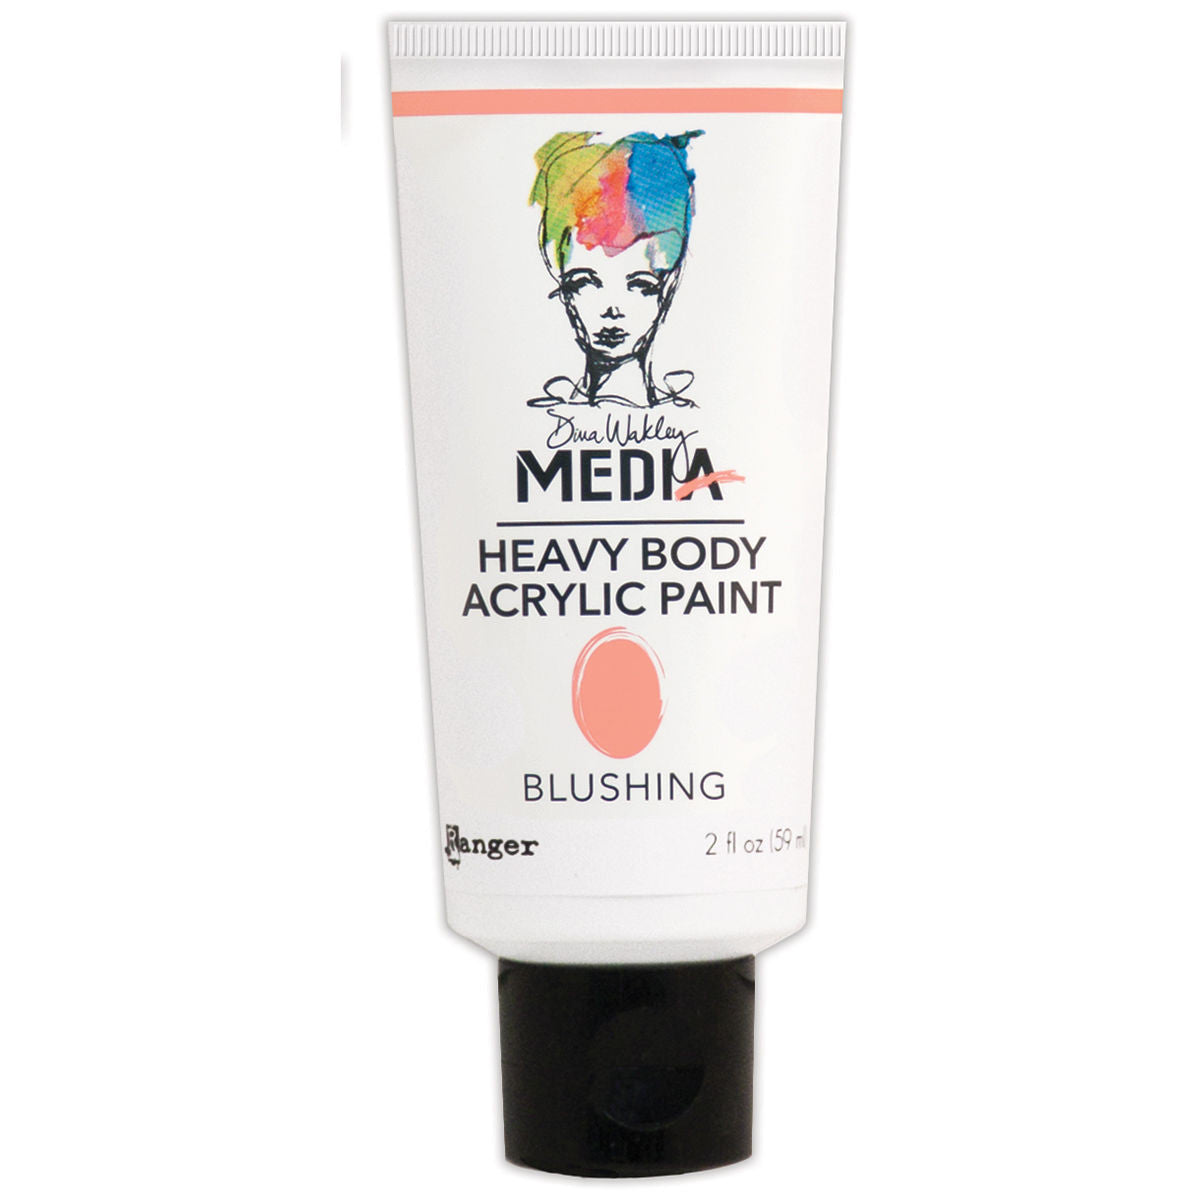 Dina Wakley Media Heavy Body Acrylic Paint Blushing